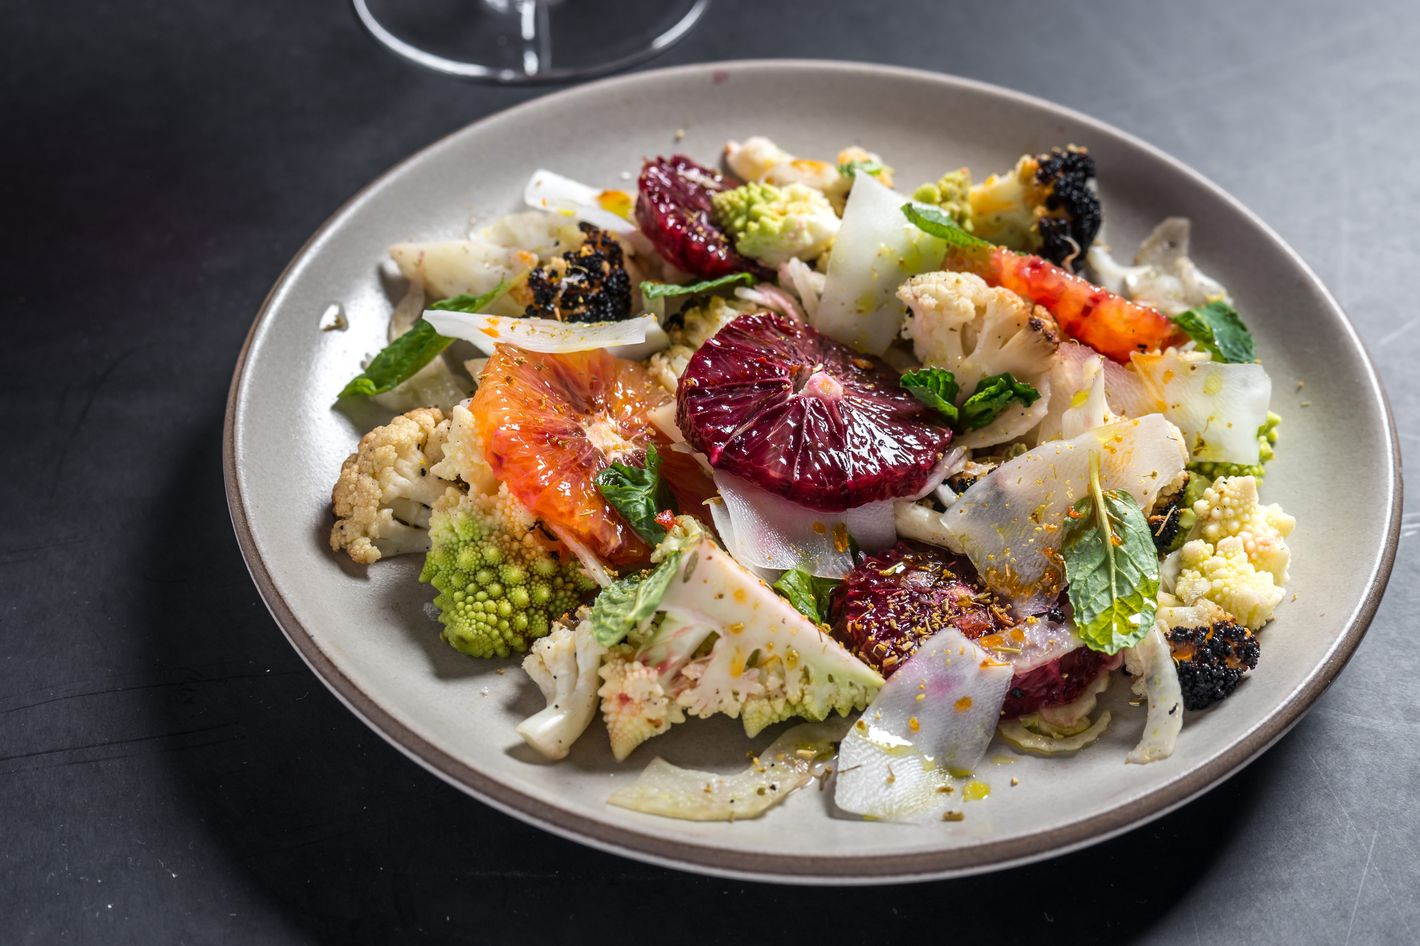 Charred-cauliflower salad with blood orange, mint, and hot peppers.